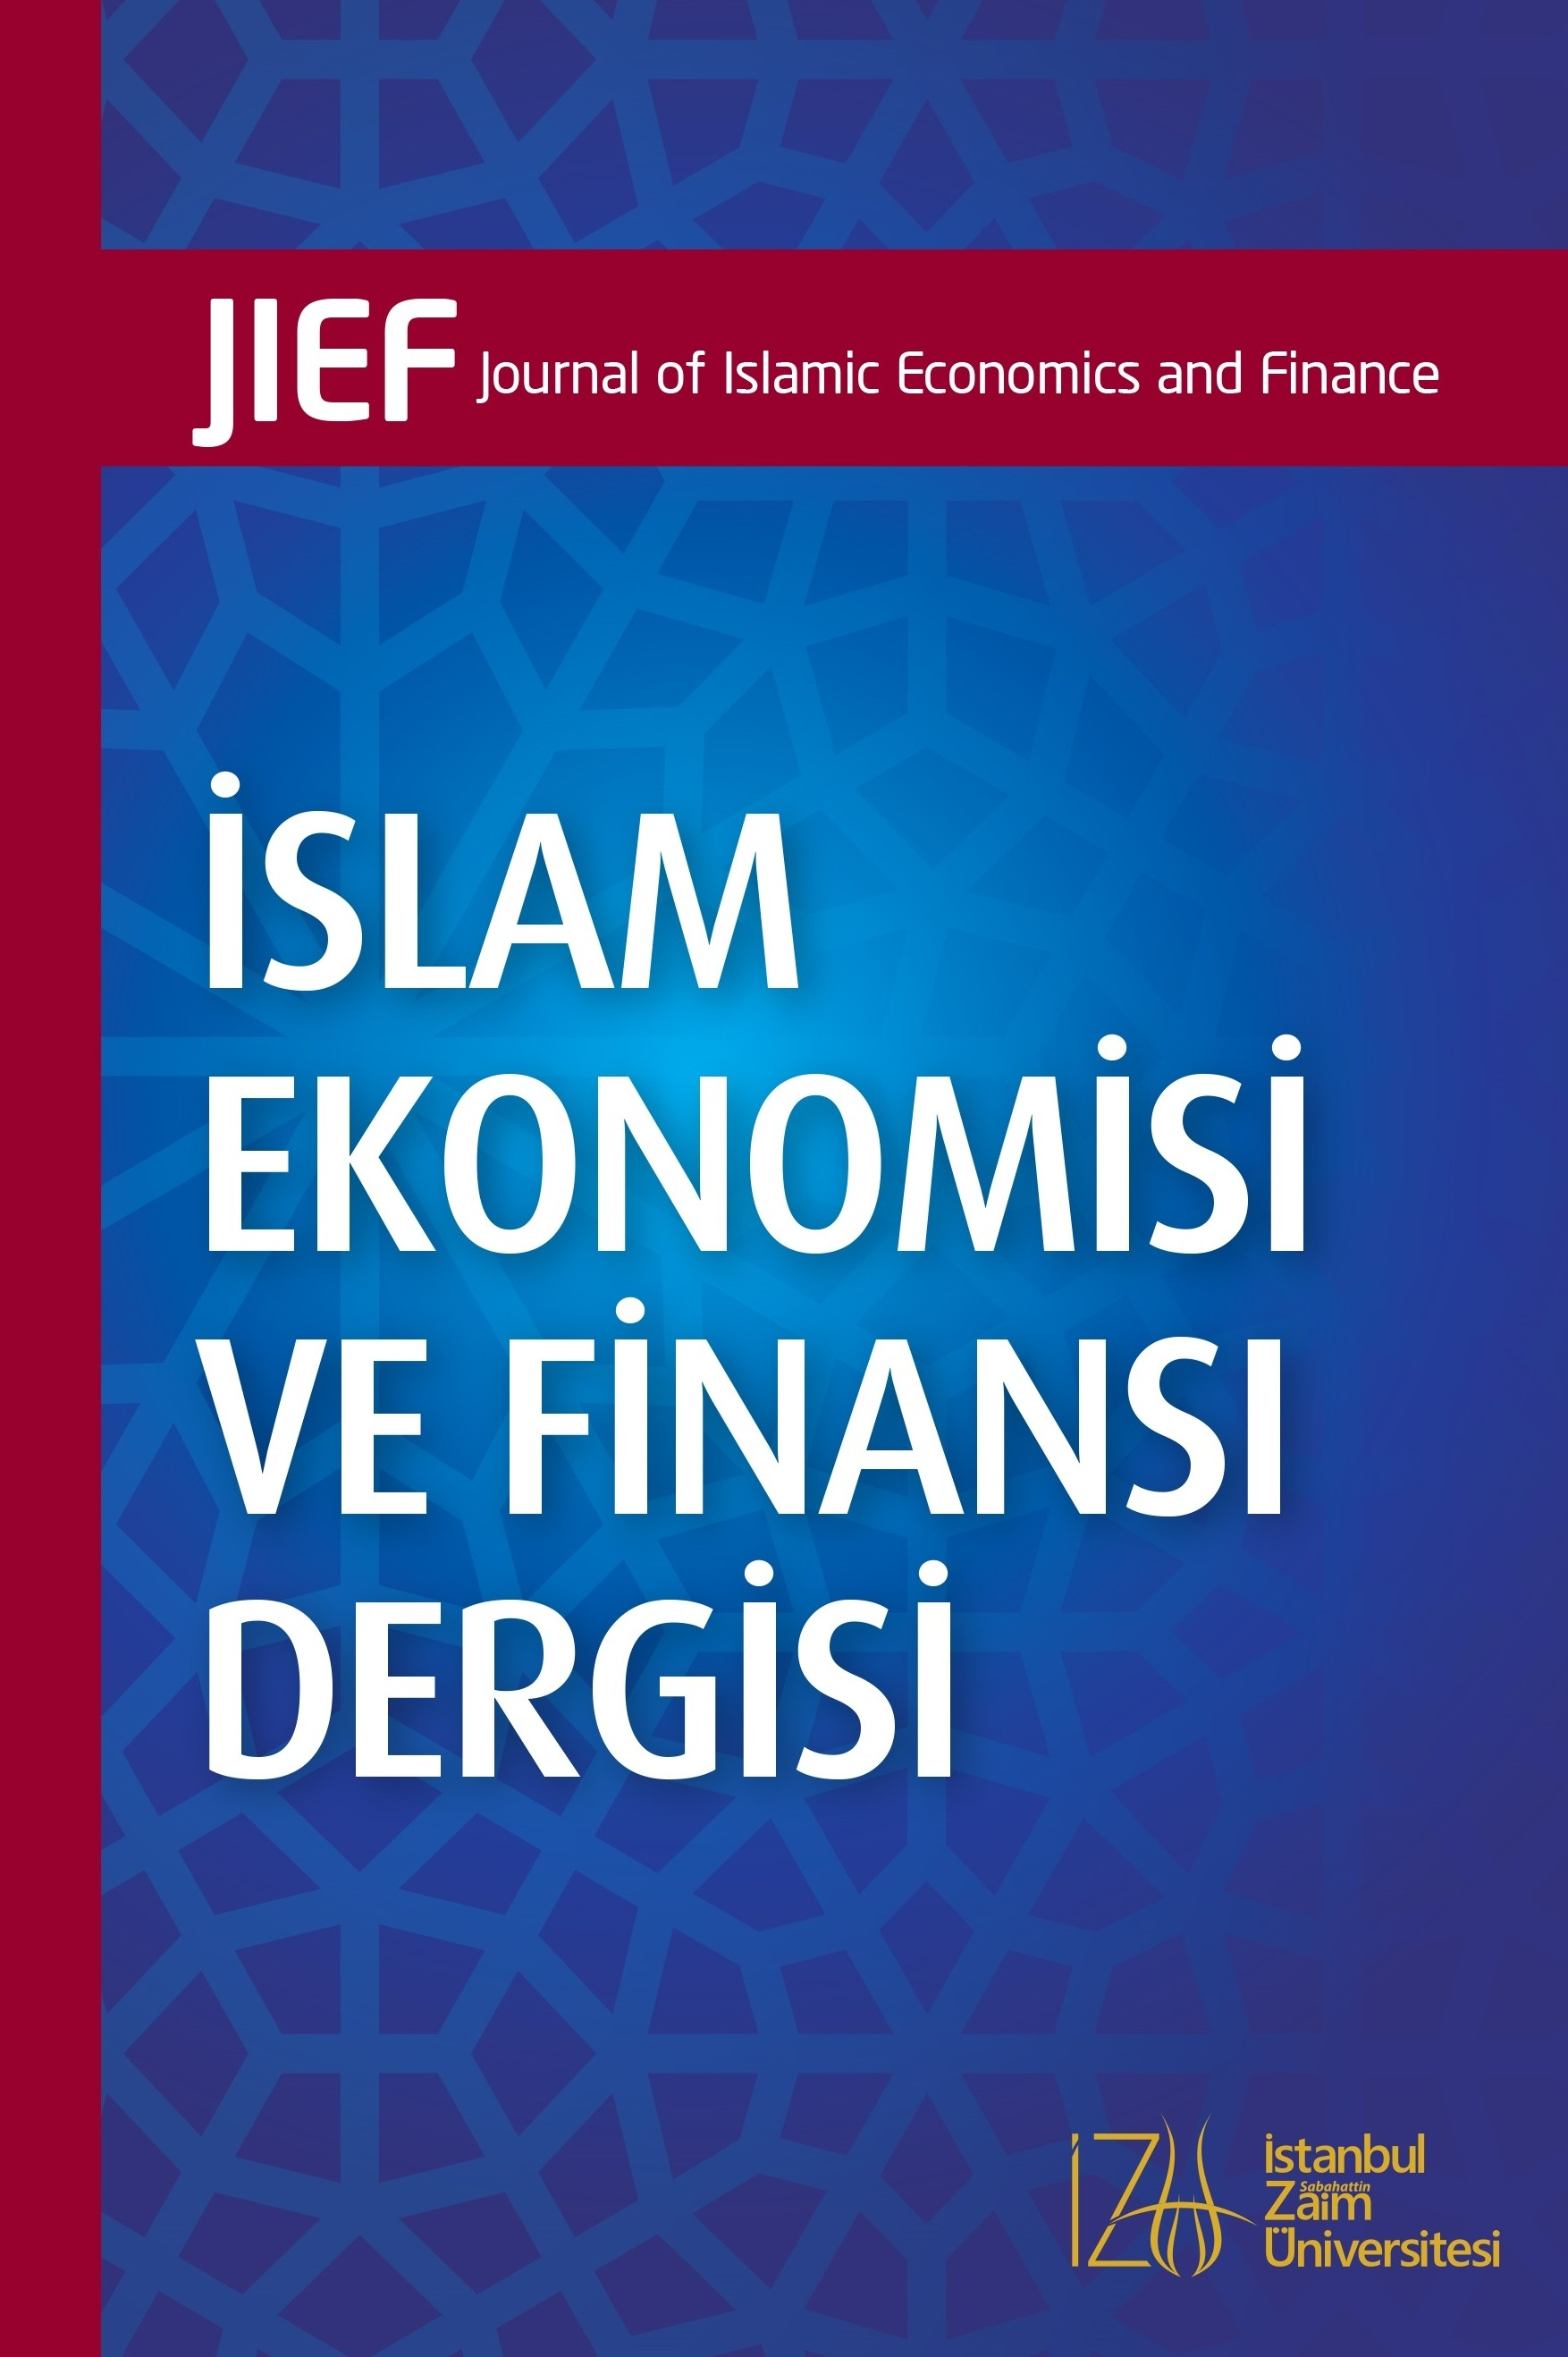 Journal of Islamic Economics and Finance (JIEF)